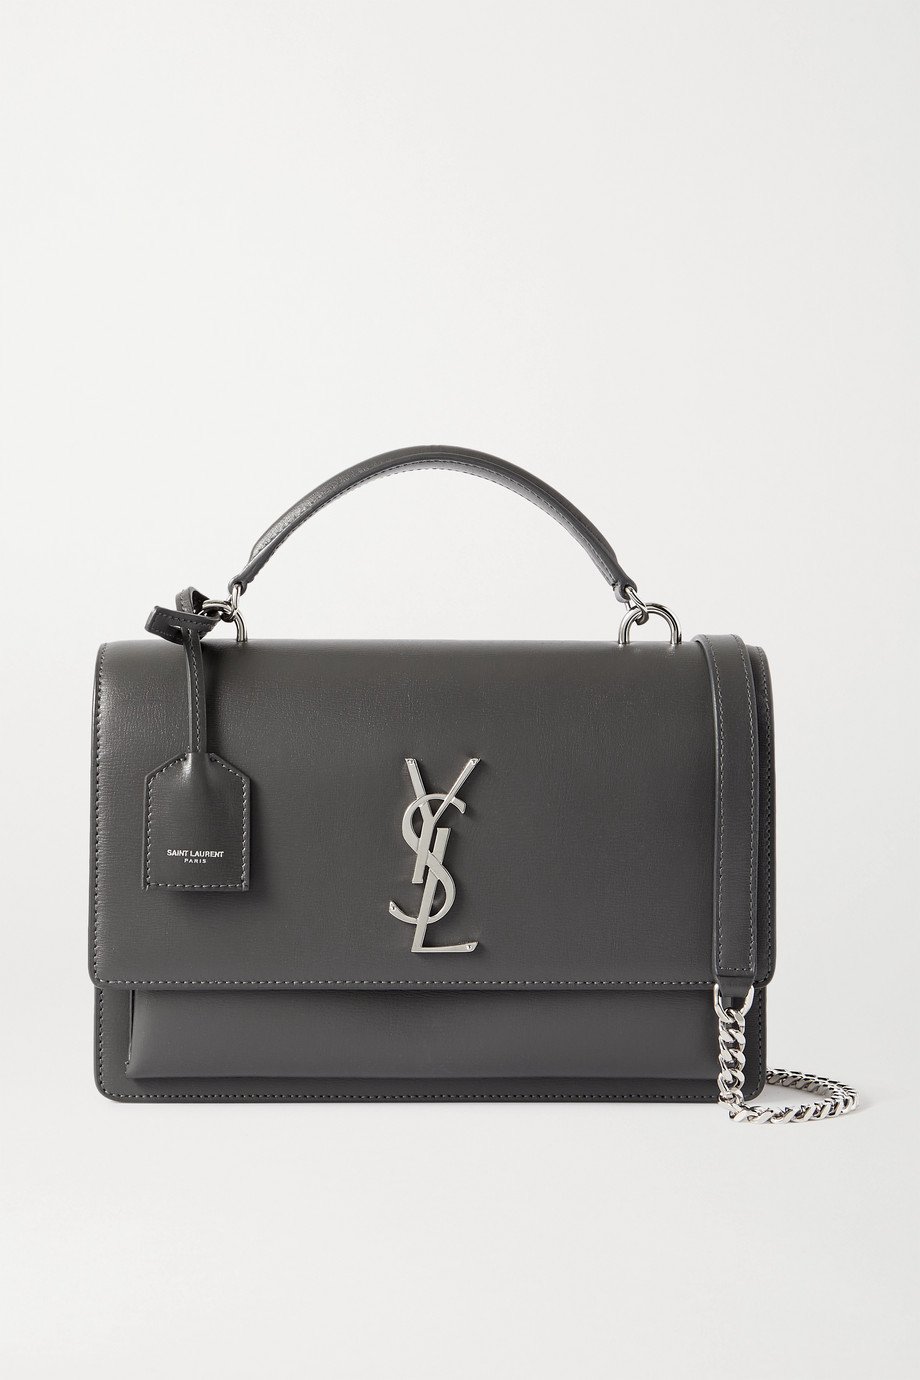 SAINT LAURENT Sunset medium leather shoulder bag